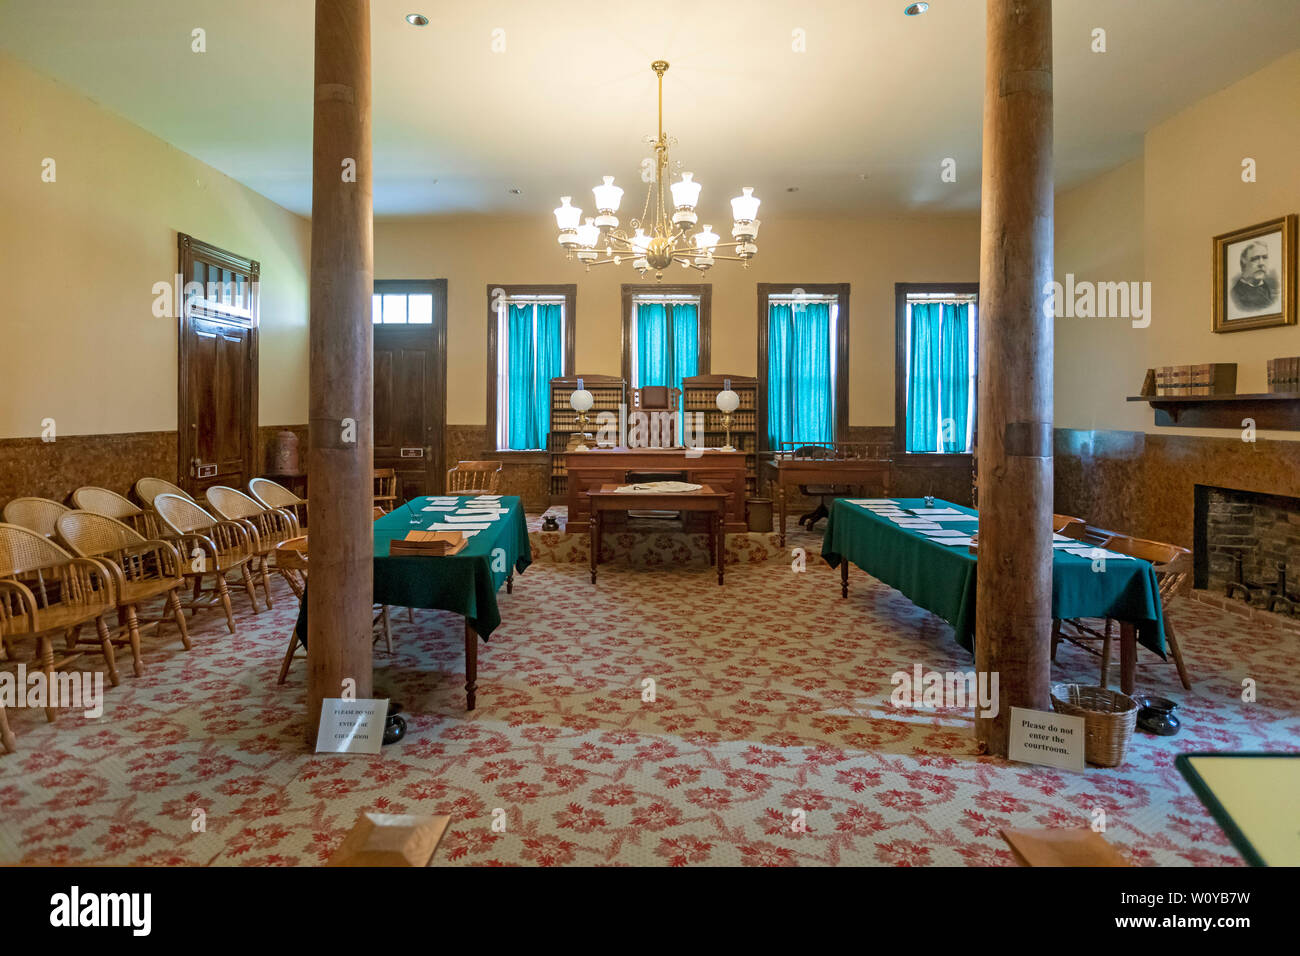 Fort Smith, Arkansas - Judge Isaac C. Parker's courtroom at Fort Smith National Historic Site. Judge Parker was the U.S. district judge responsible fo - Stock Image